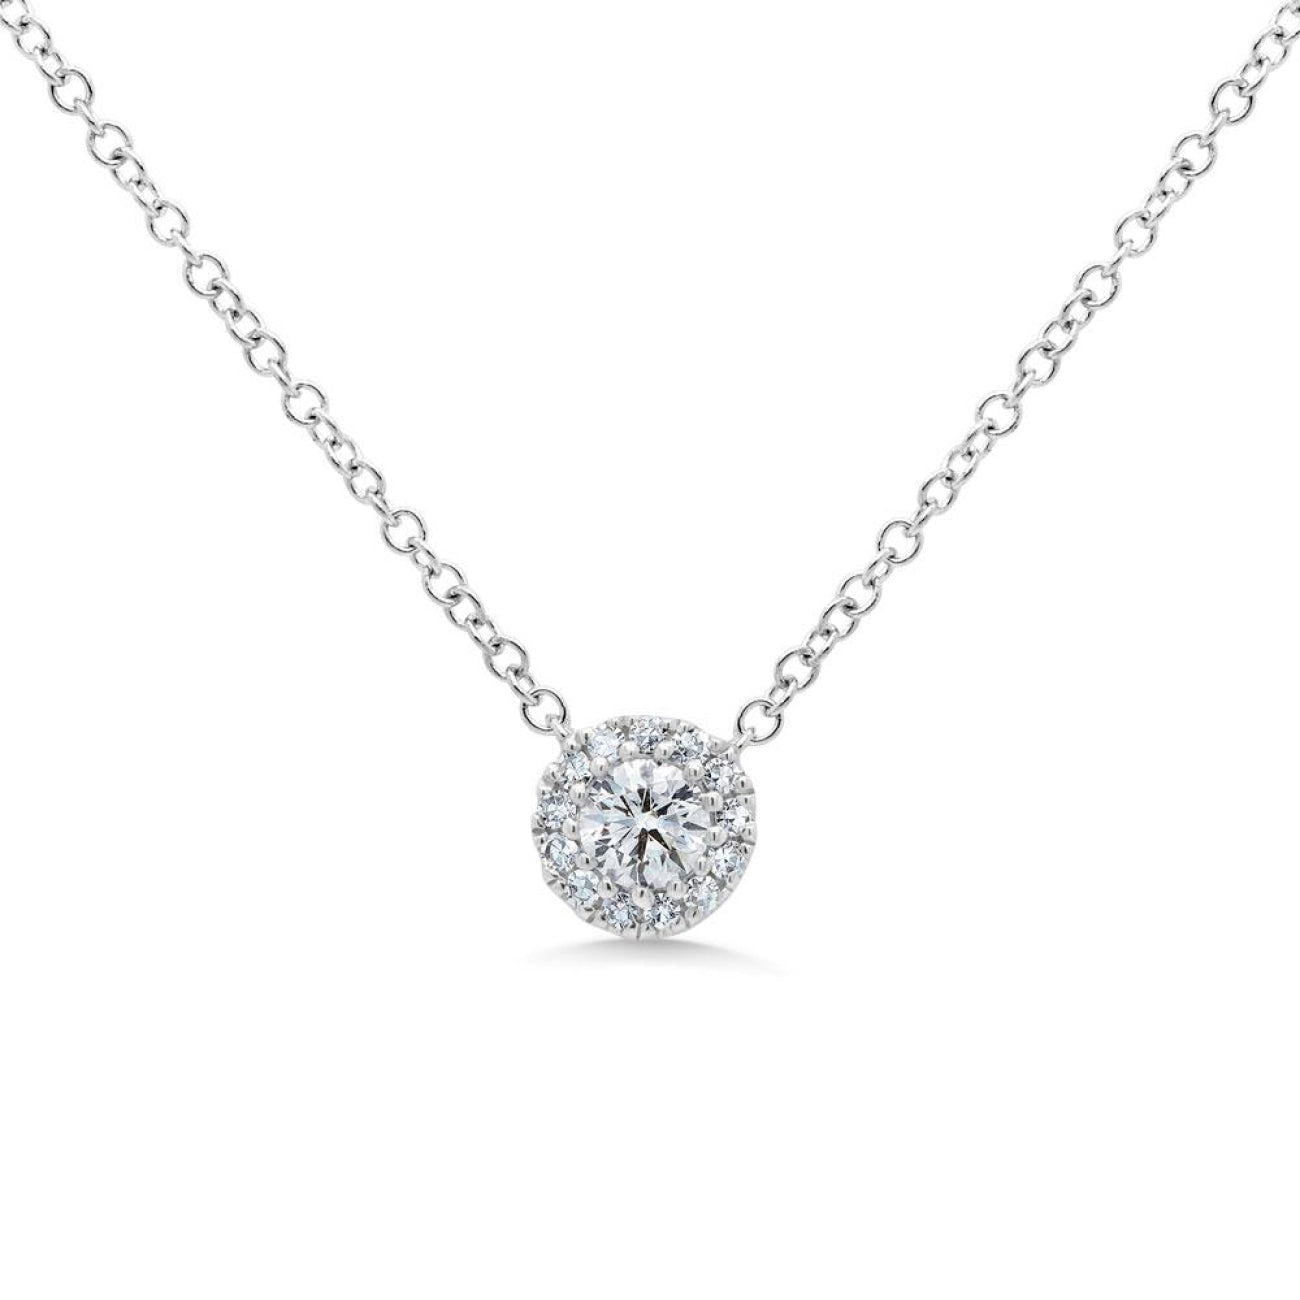 Shy Creation Jewelry - White Gold Diamond Pendant | Manfredi Jewels